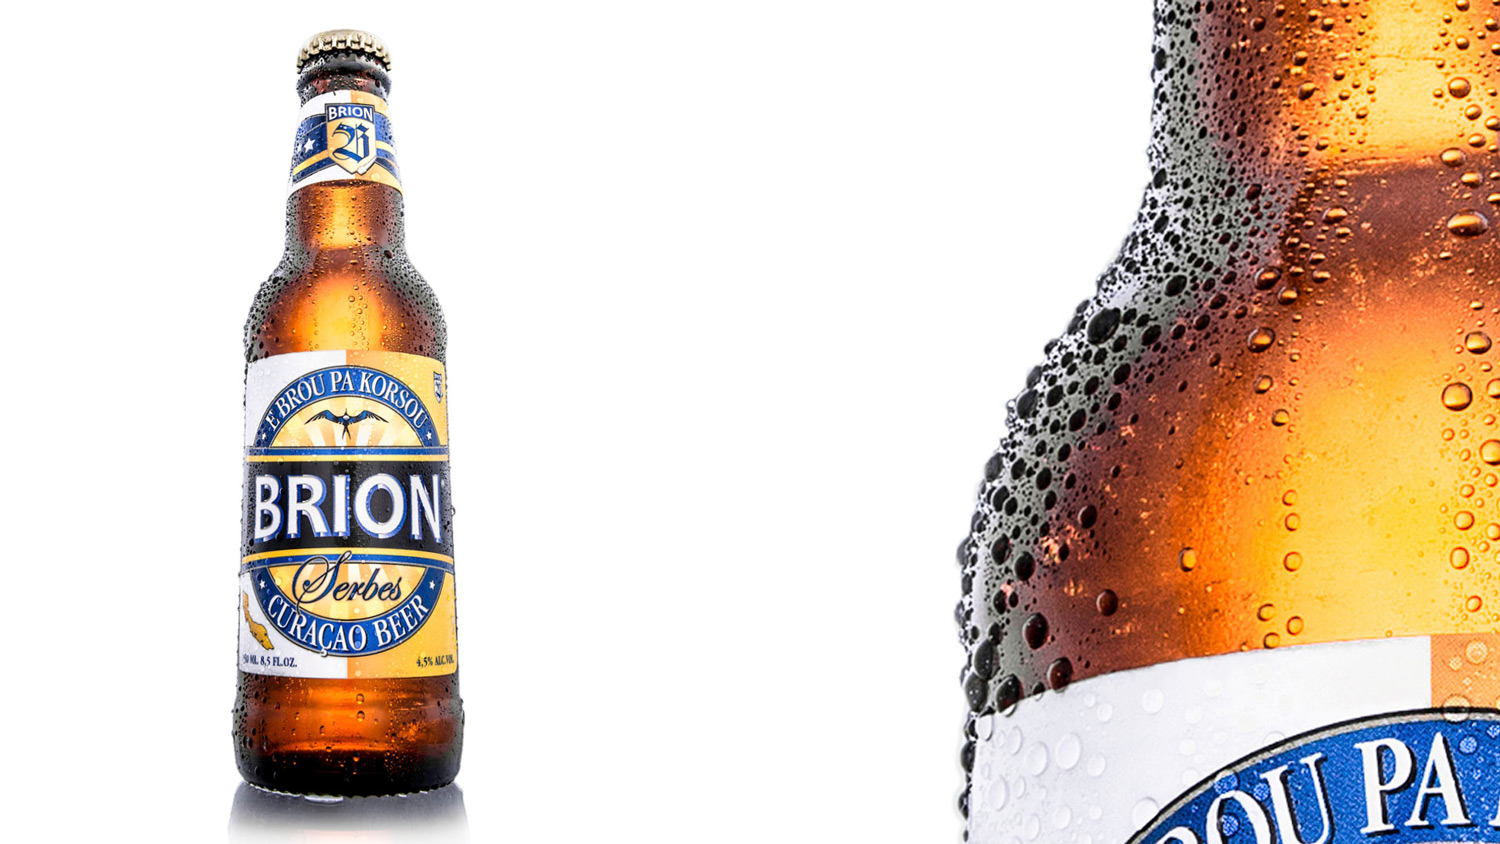 BRION-BEER-ton_photography1.jpg